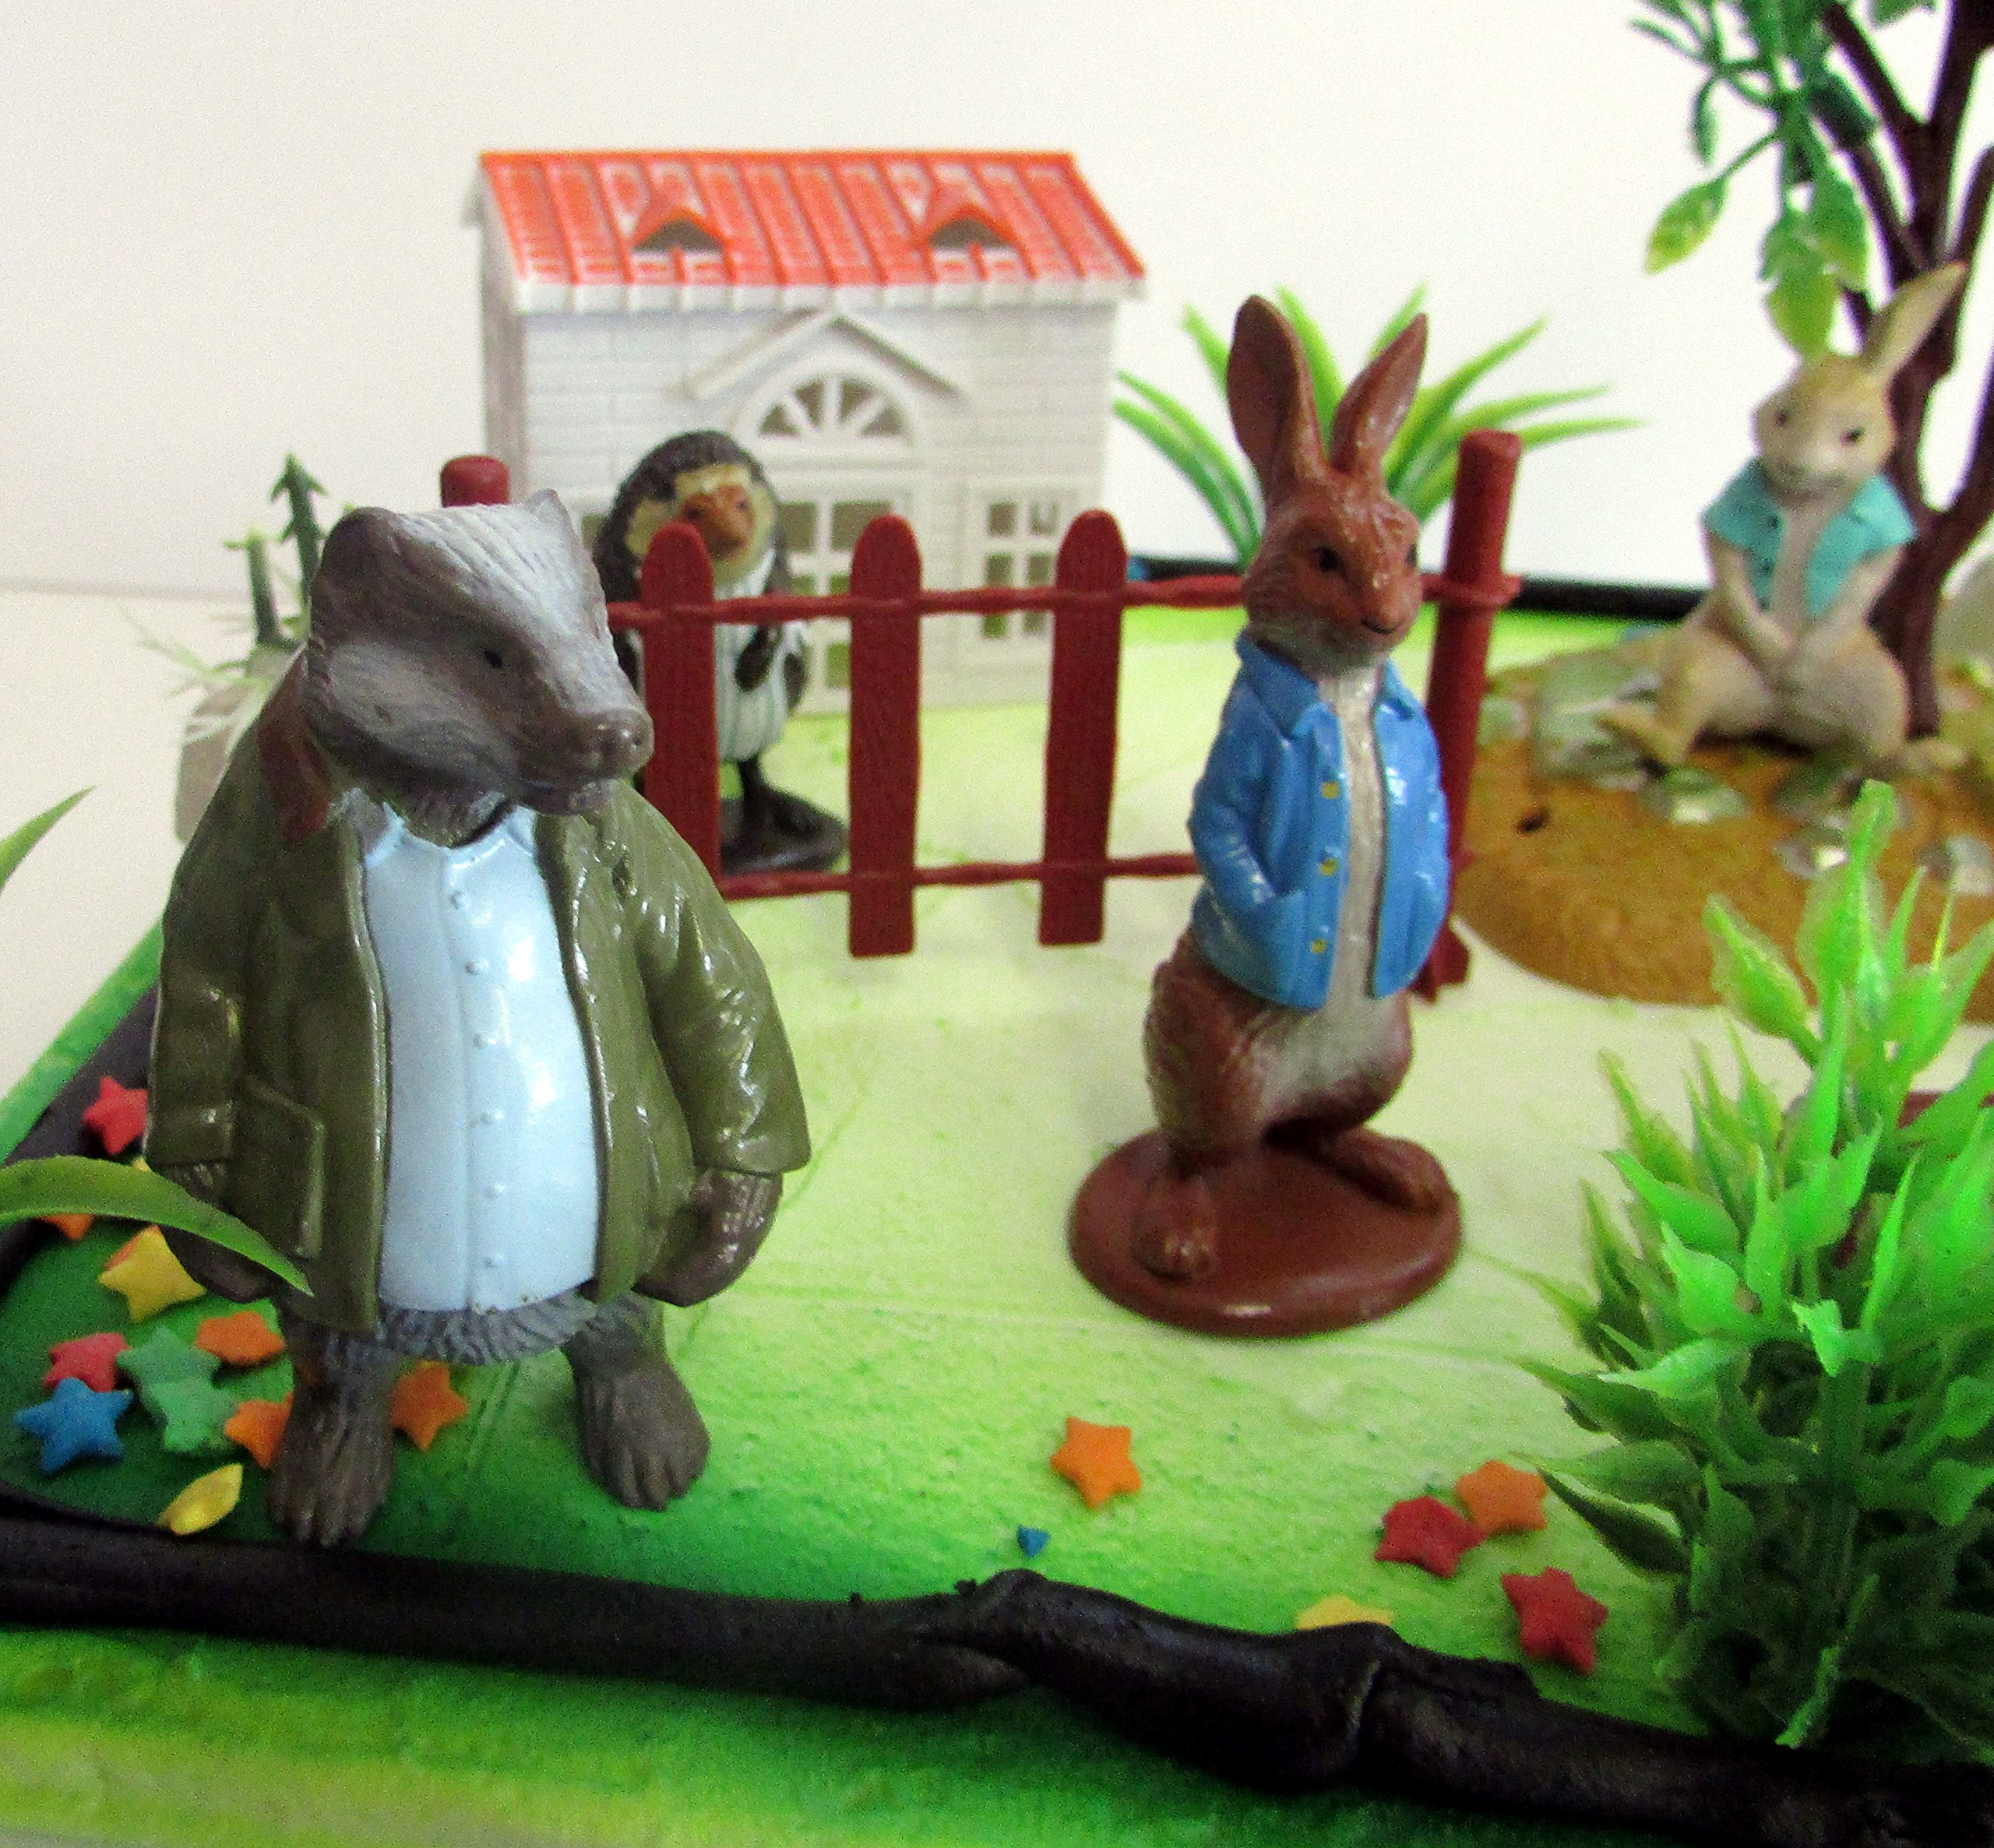 Cake Toppers Beatrix Potter Peter Rabbit Birthday Set Featuring Peter Rabbit and Friends Figures with Decorative Themed Accessories by Cake Toppers (Image #3)